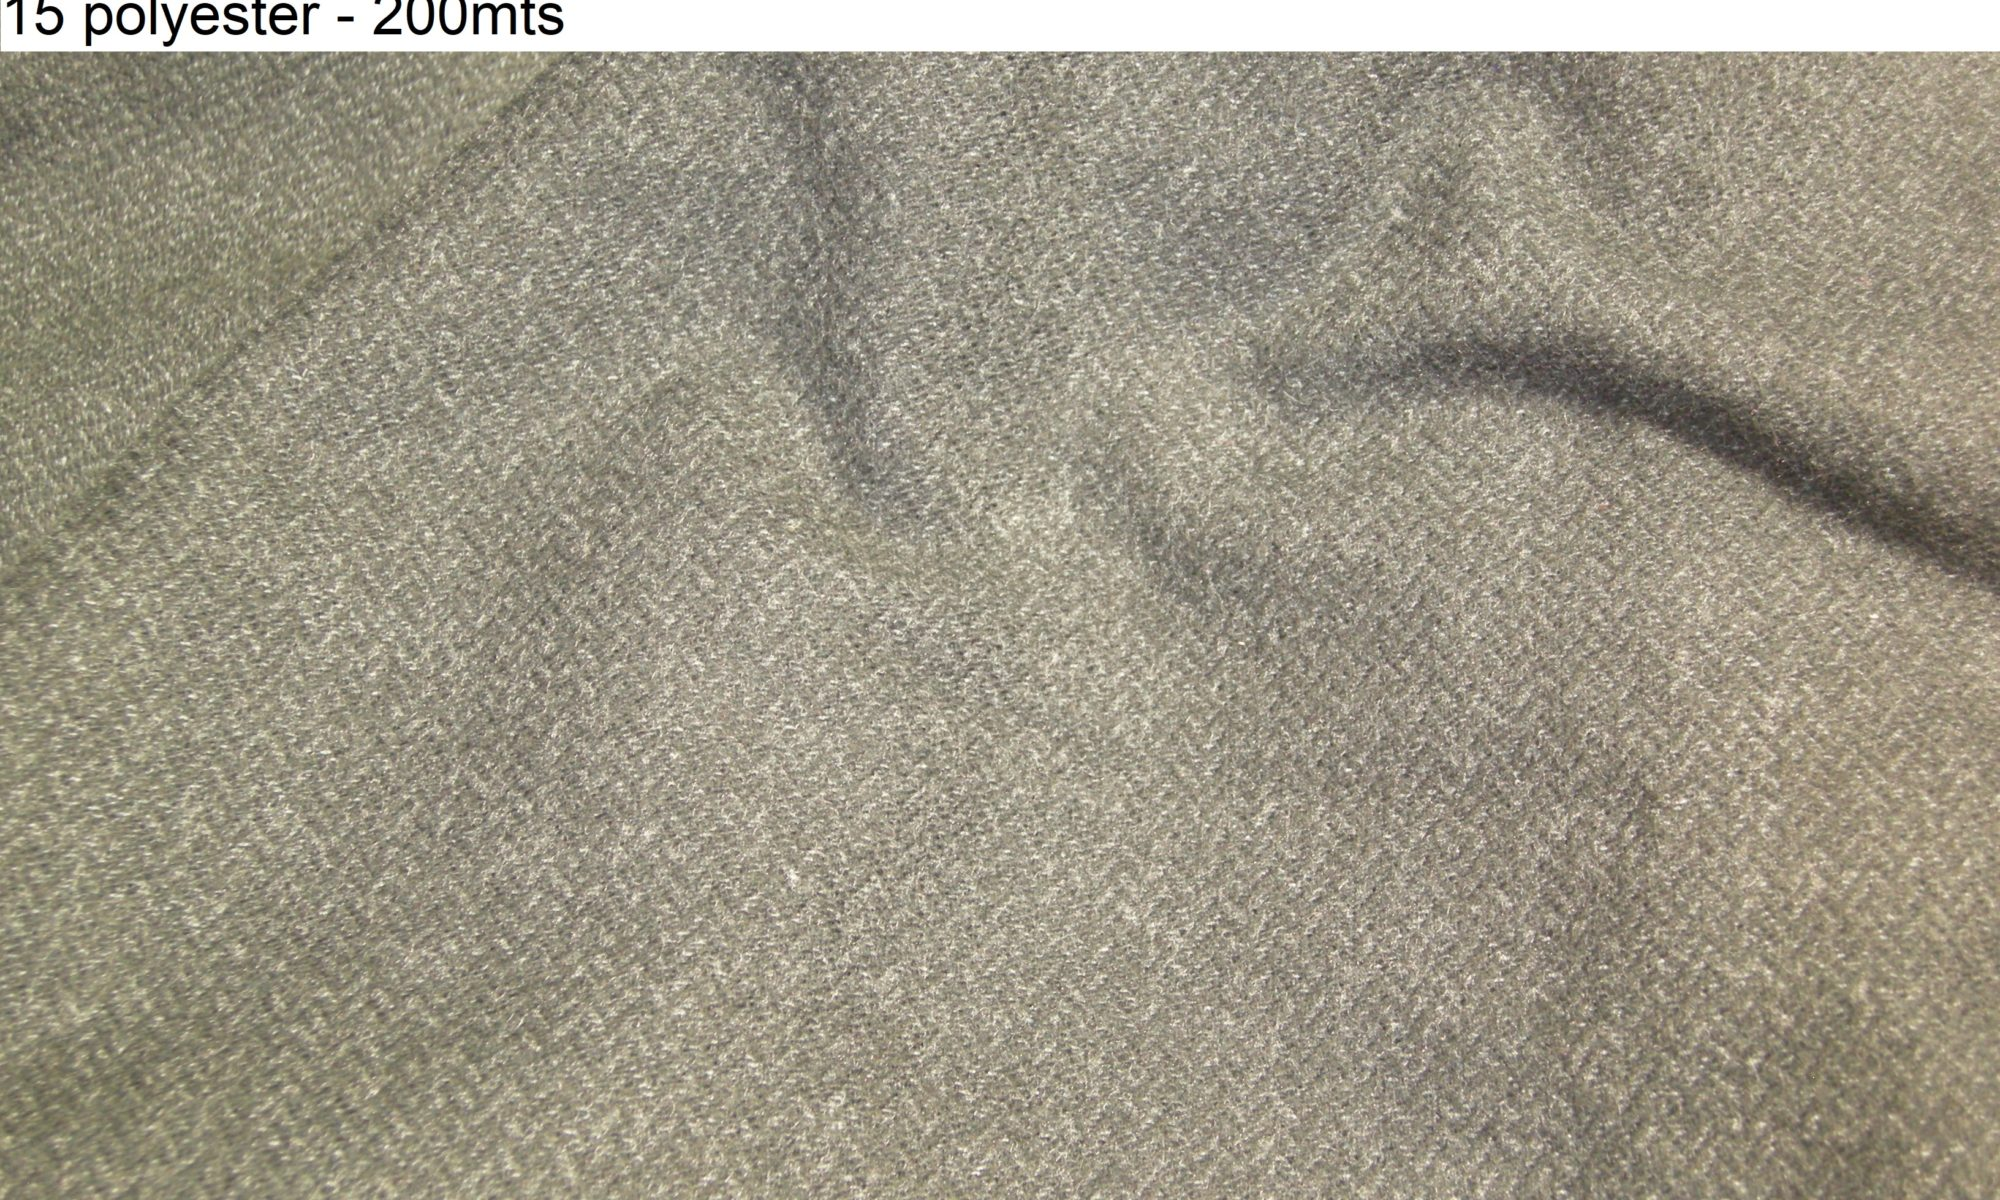 ART 7419 cotton blend herringbone jacket coat fashion fabric WIDTH cm150 WEIGHT gr520 - gr346 square meter - COMPOSITION 85 cotton 15 polyester - 200mts